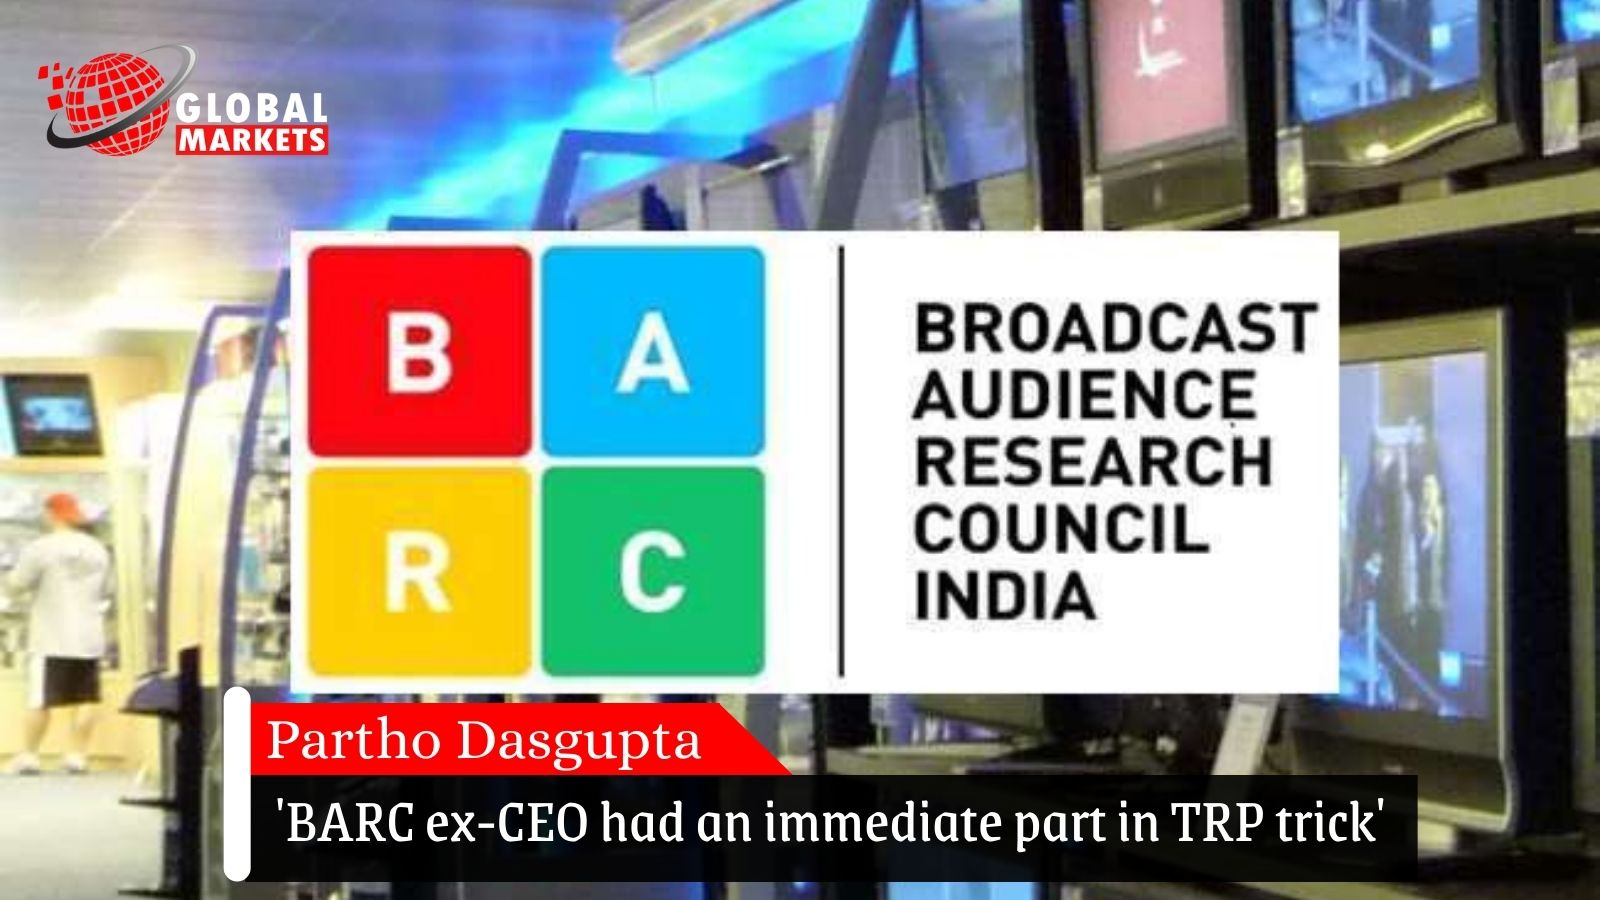 'BARC ex-CEO had an immediate part in TRP trick'